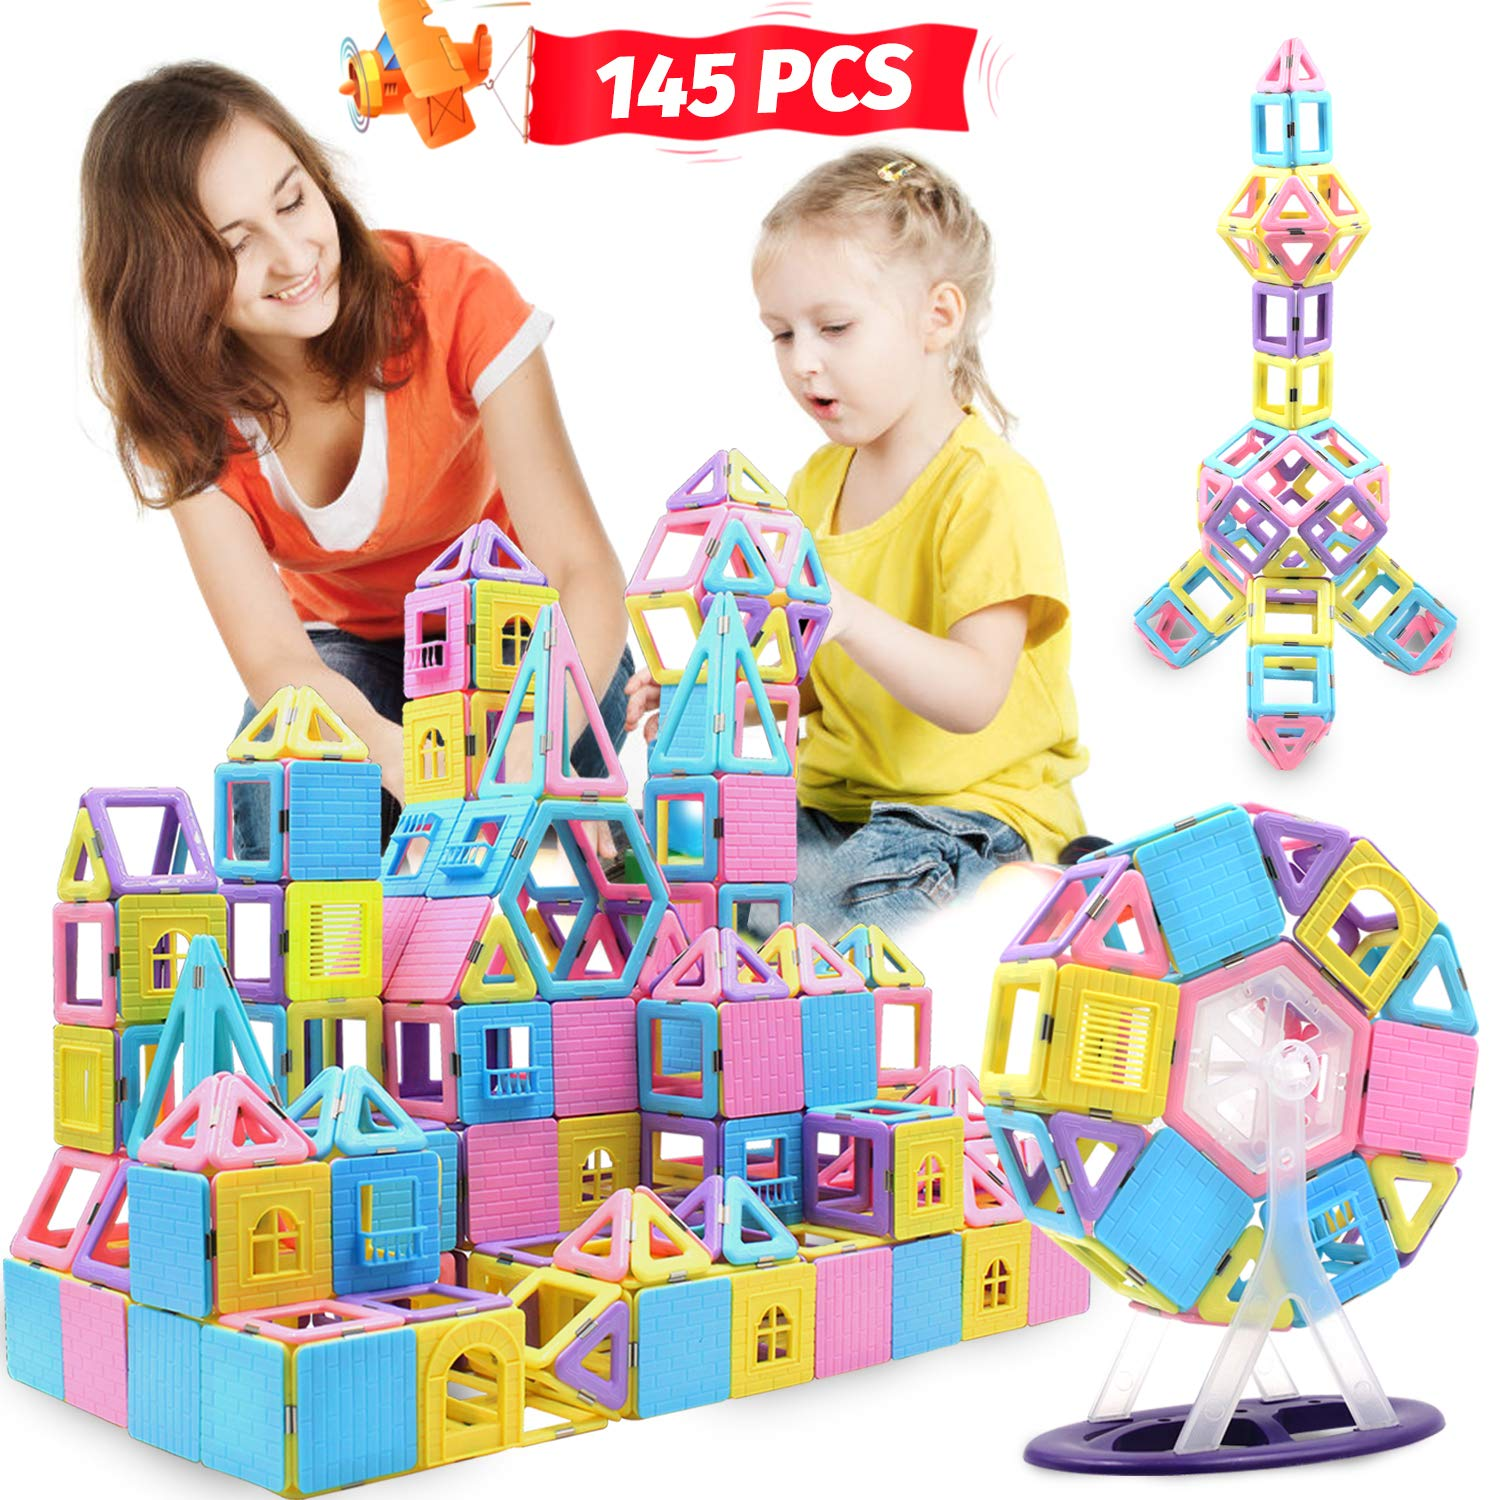 HOMOFY 145 PCS Castle Magnetic Blocks 3D Learning & Development Magnetics Building Blocks Kids Toys for 3 4 5 6 Years Old Boys Girls Gifts by HOMOFY